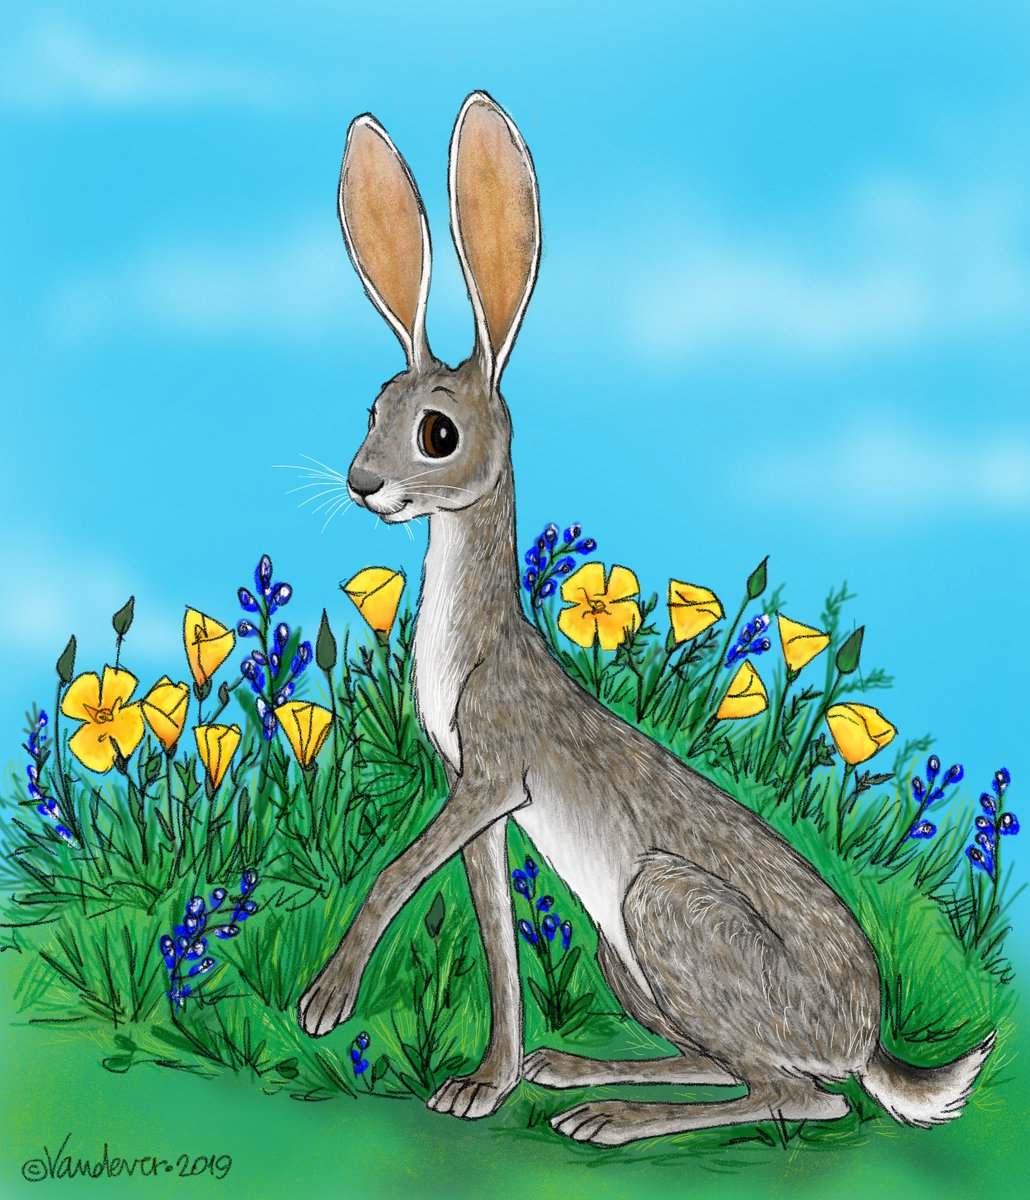 Here are two spring-y rabbits for this week&#39;s #colour_collective @Clr_Collective. Is there a happier color than #lemonyellow? #kidlitart #illustrationartists #illustrationart #chroniclife<br>http://pic.twitter.com/YhiwOicqtd